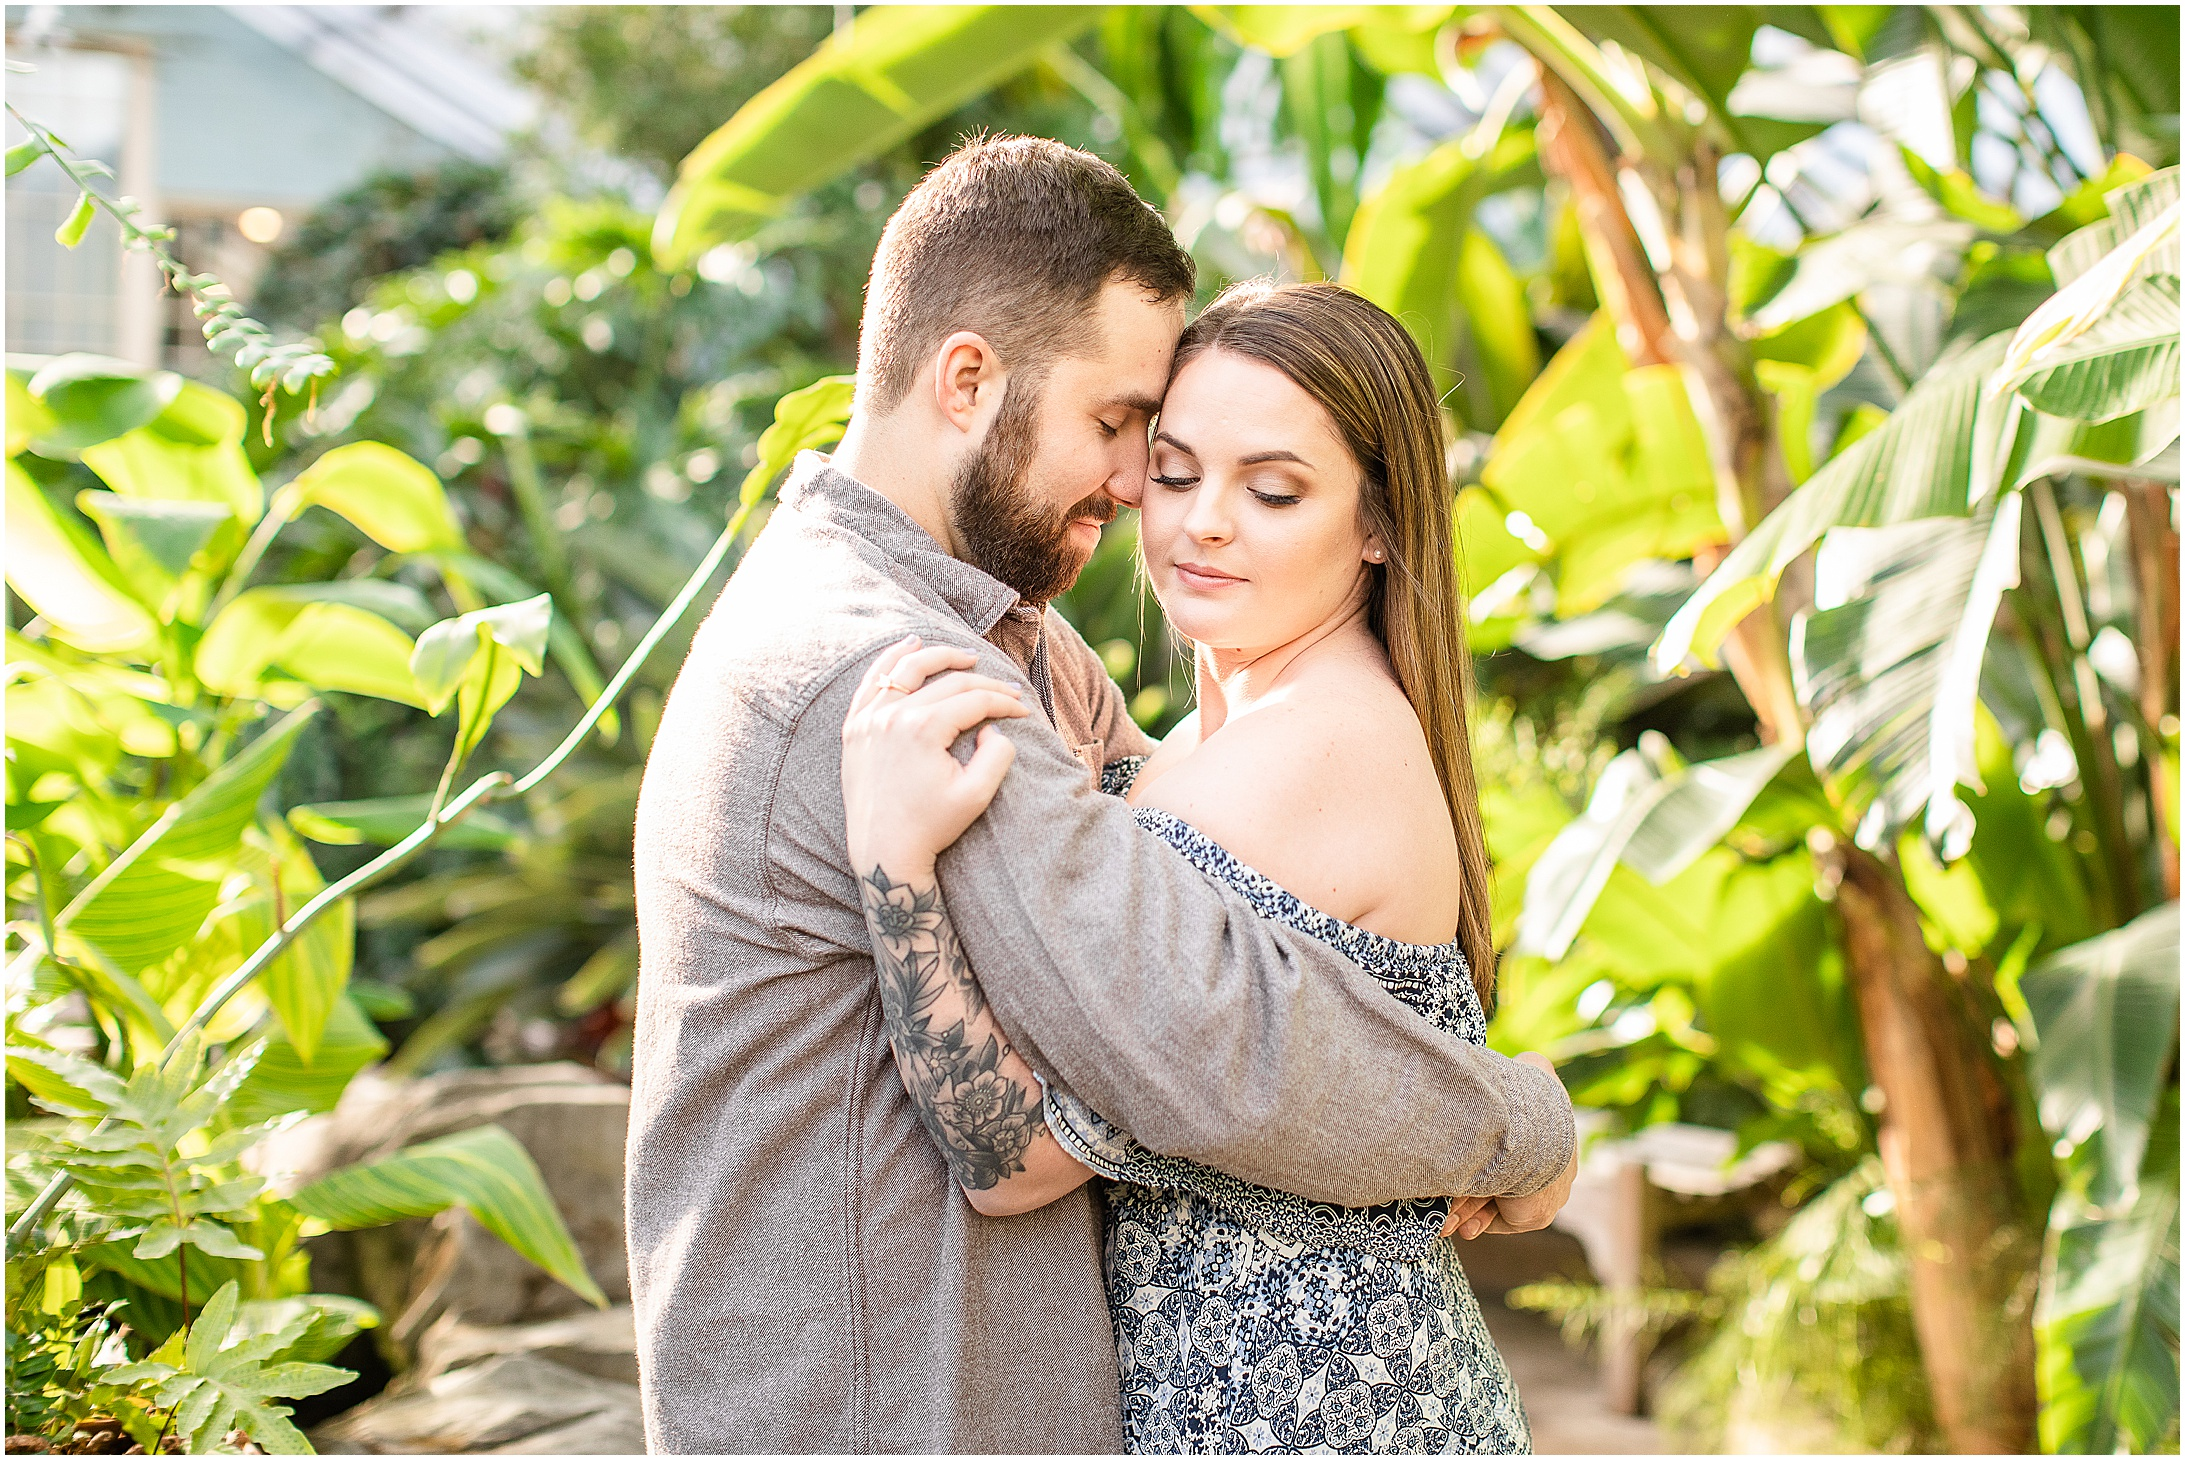 Rawlings-Conservatory-Engagement-Photos_0280.jpg